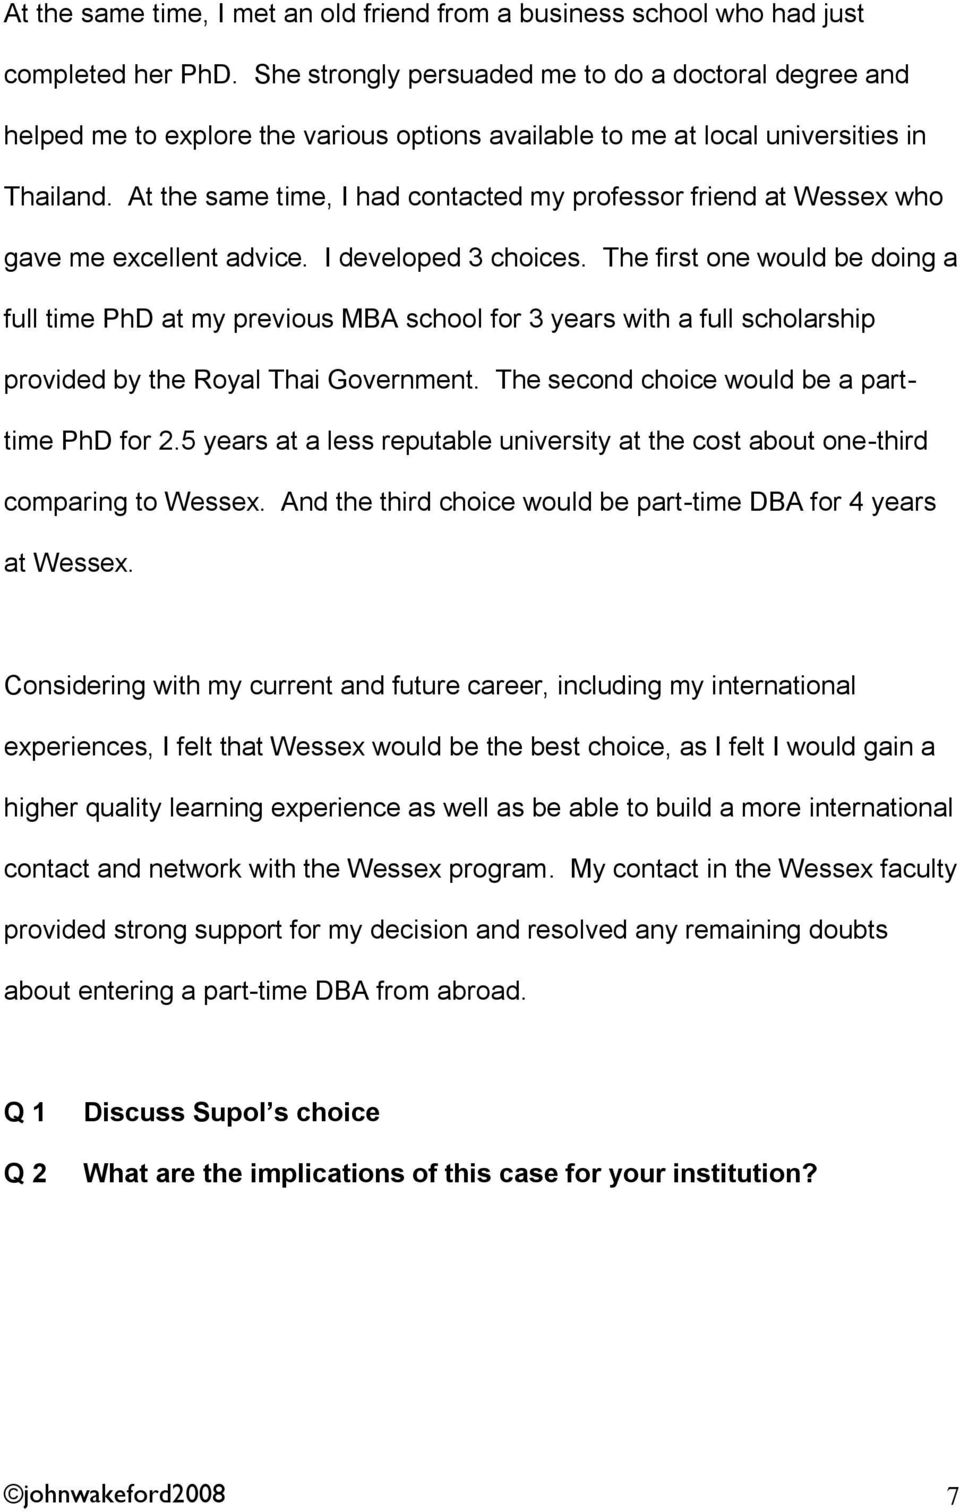 At the same time, I had contacted my professor friend at Wessex who gave me excellent advice. I developed 3 choices.